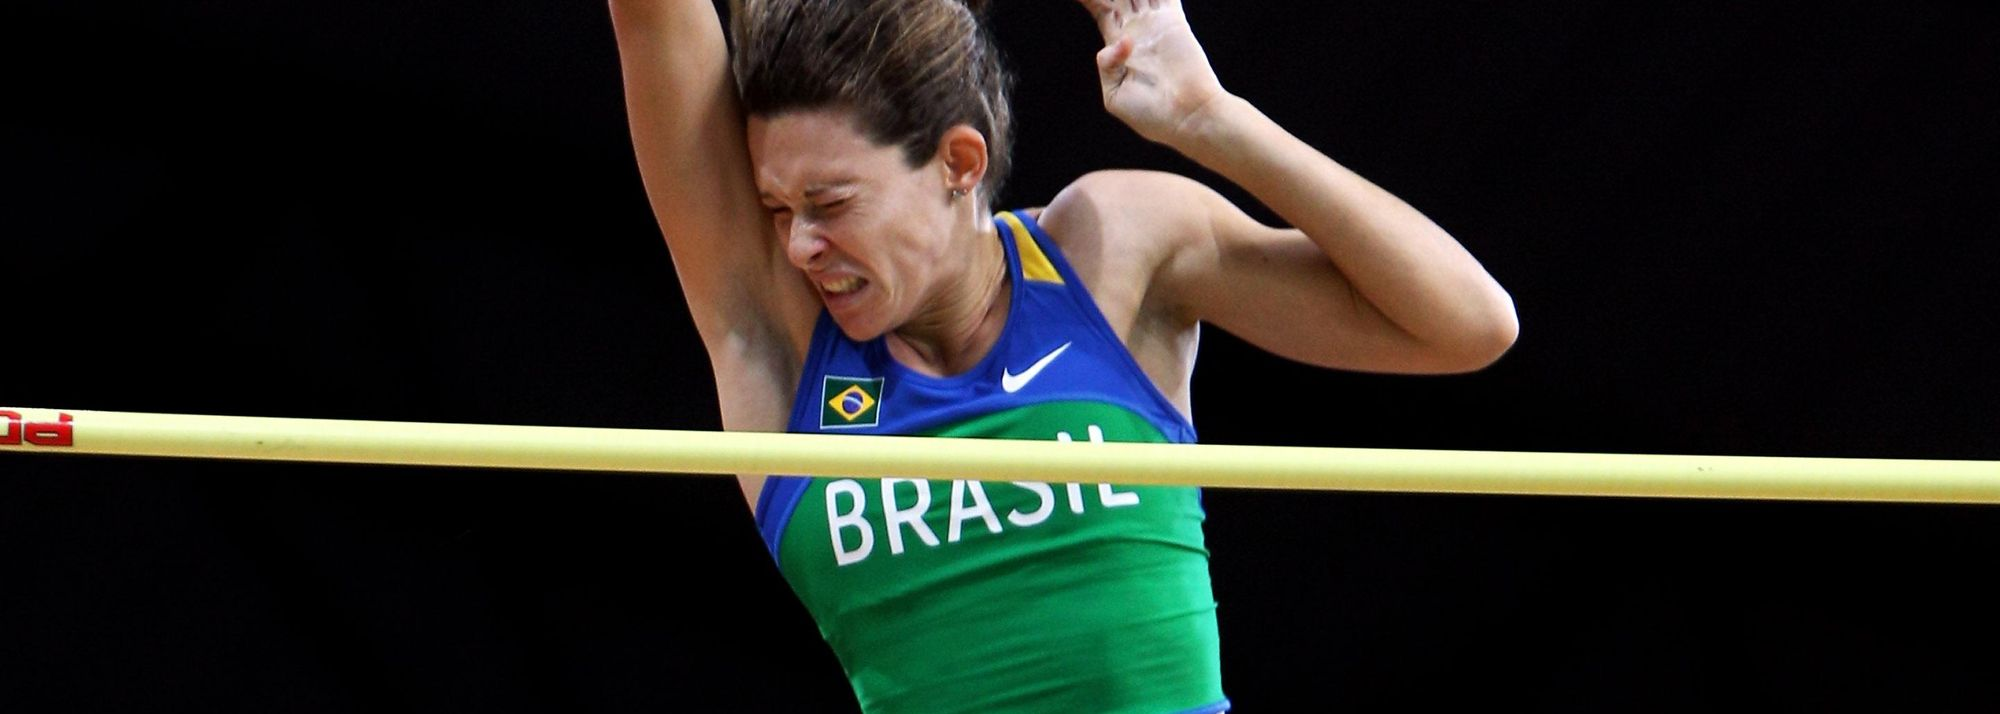 Moving up two big steps from her finish two years ago, Fabiana Murer took an unexpected but certainly deserved victory in the women's Pole Vault.